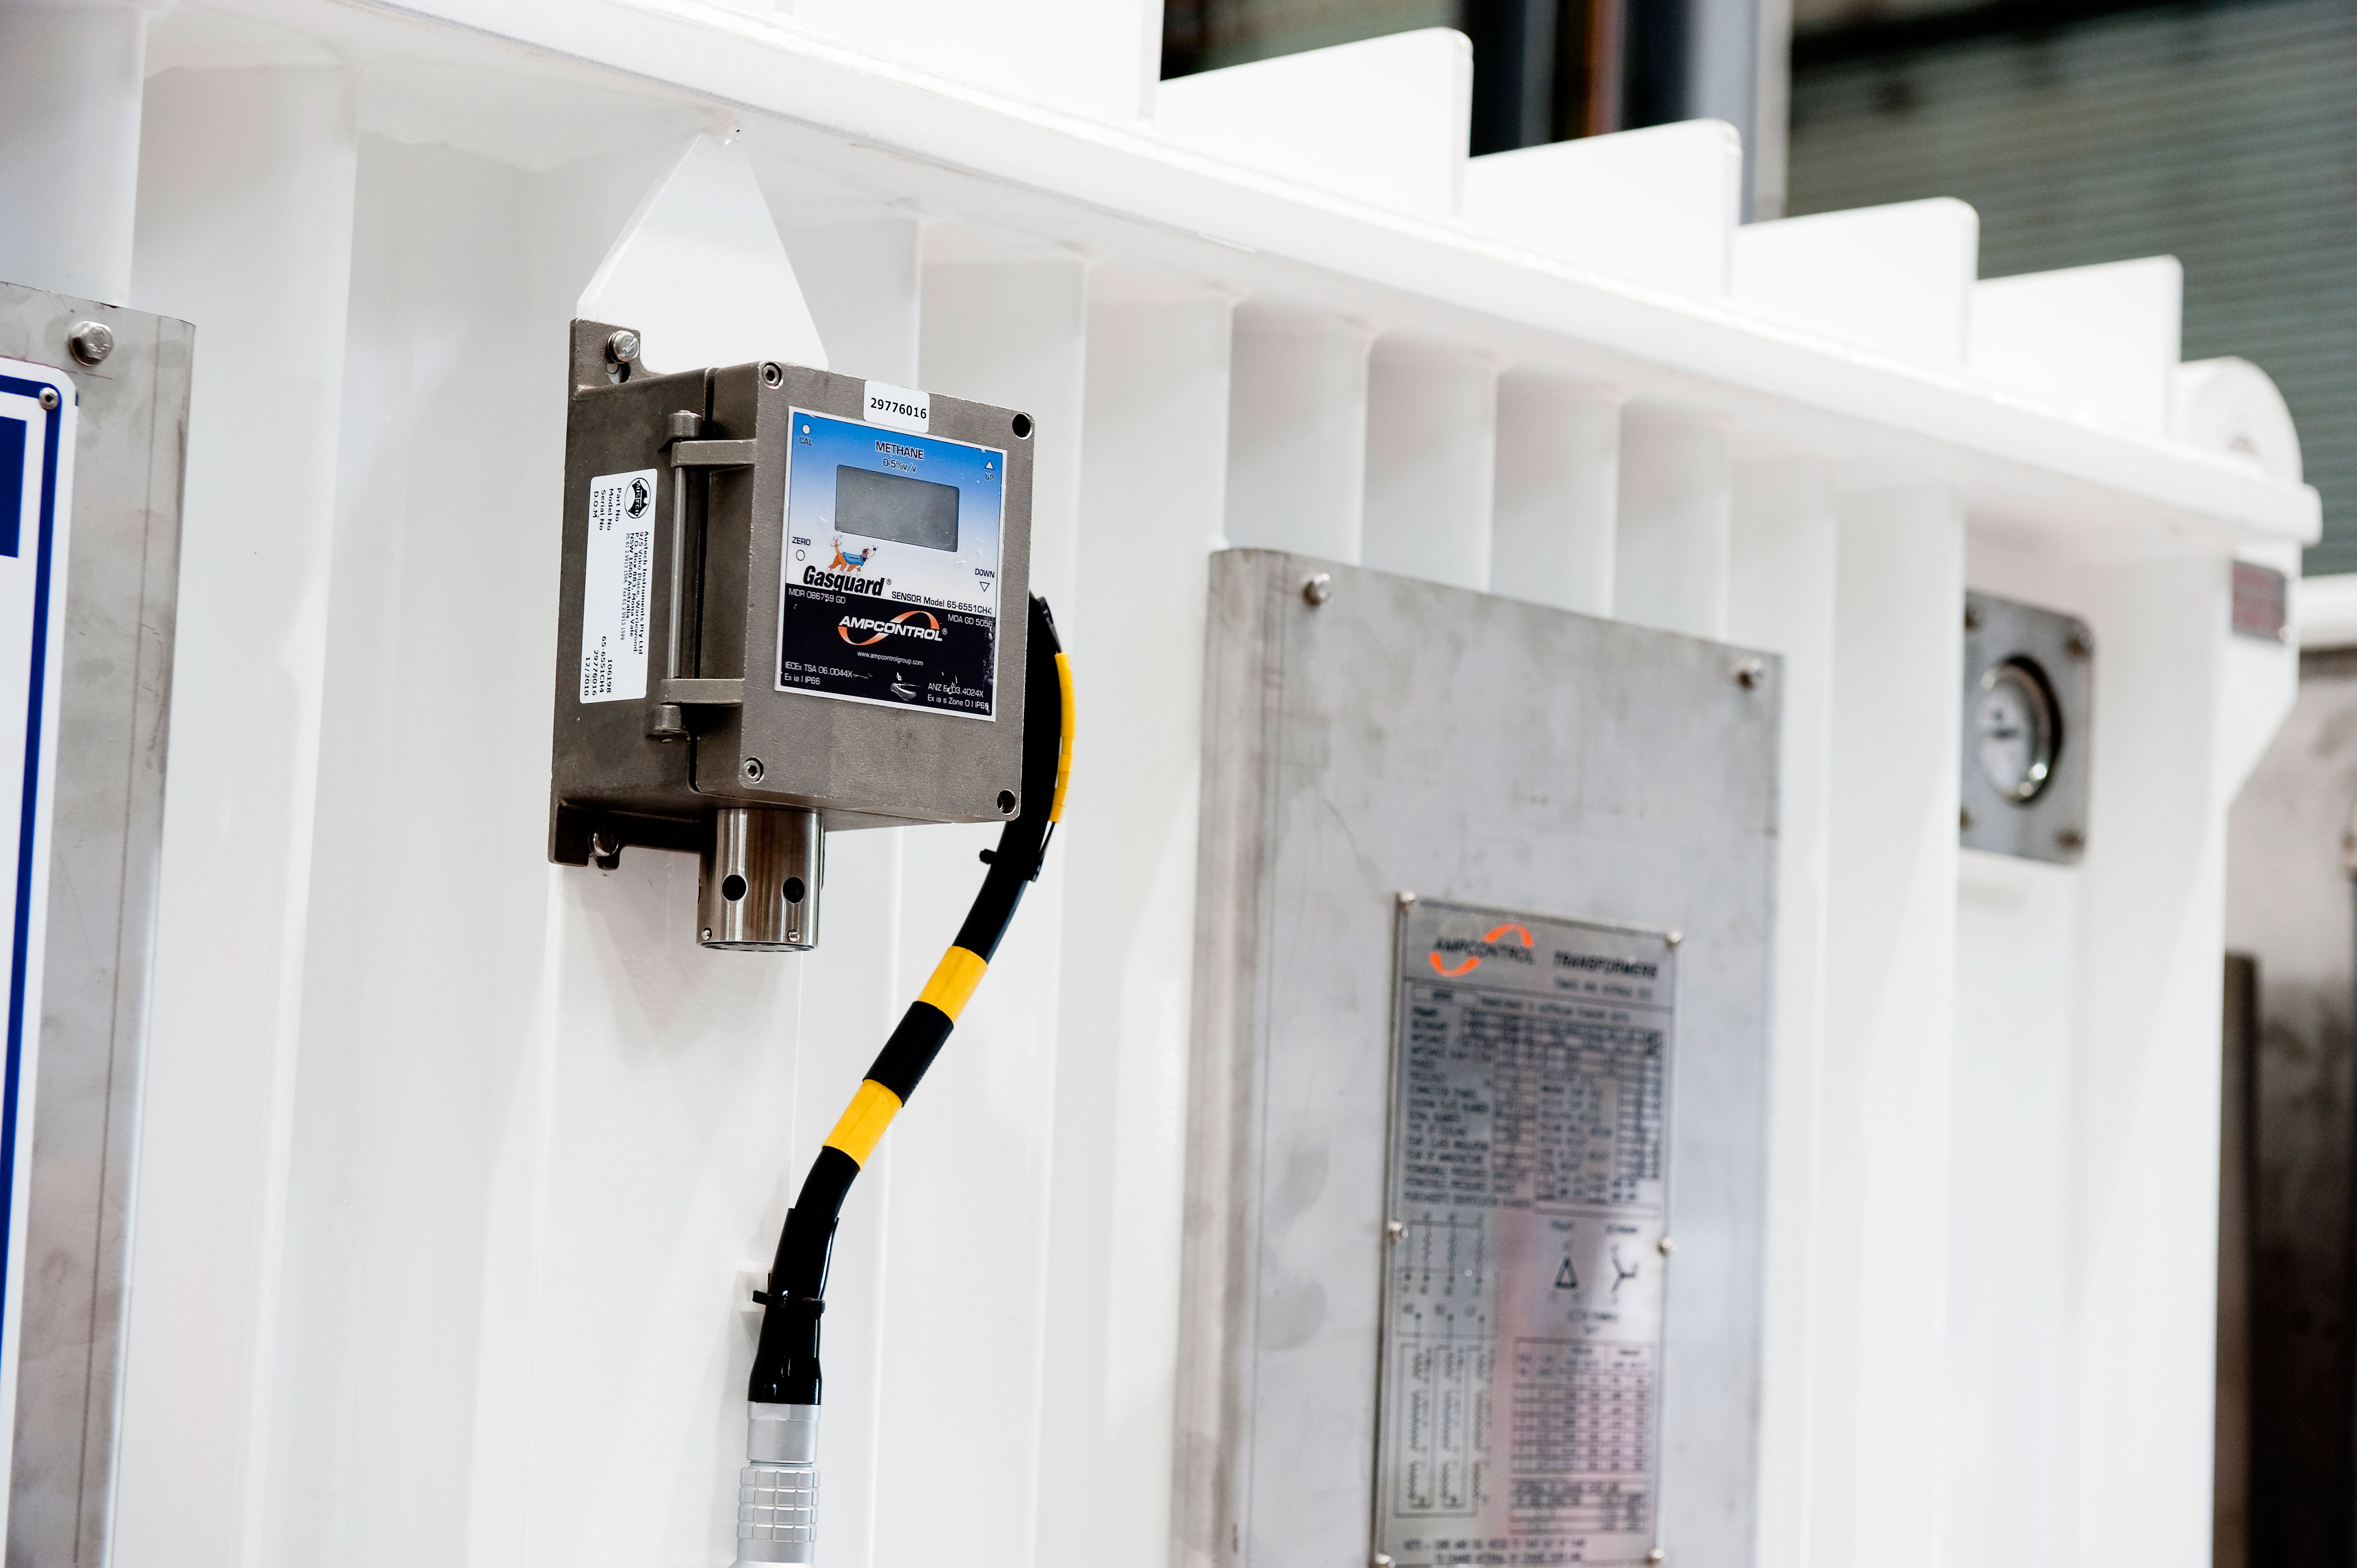 Mining Gas Ventilation Monitoring And Control Ampcontrol